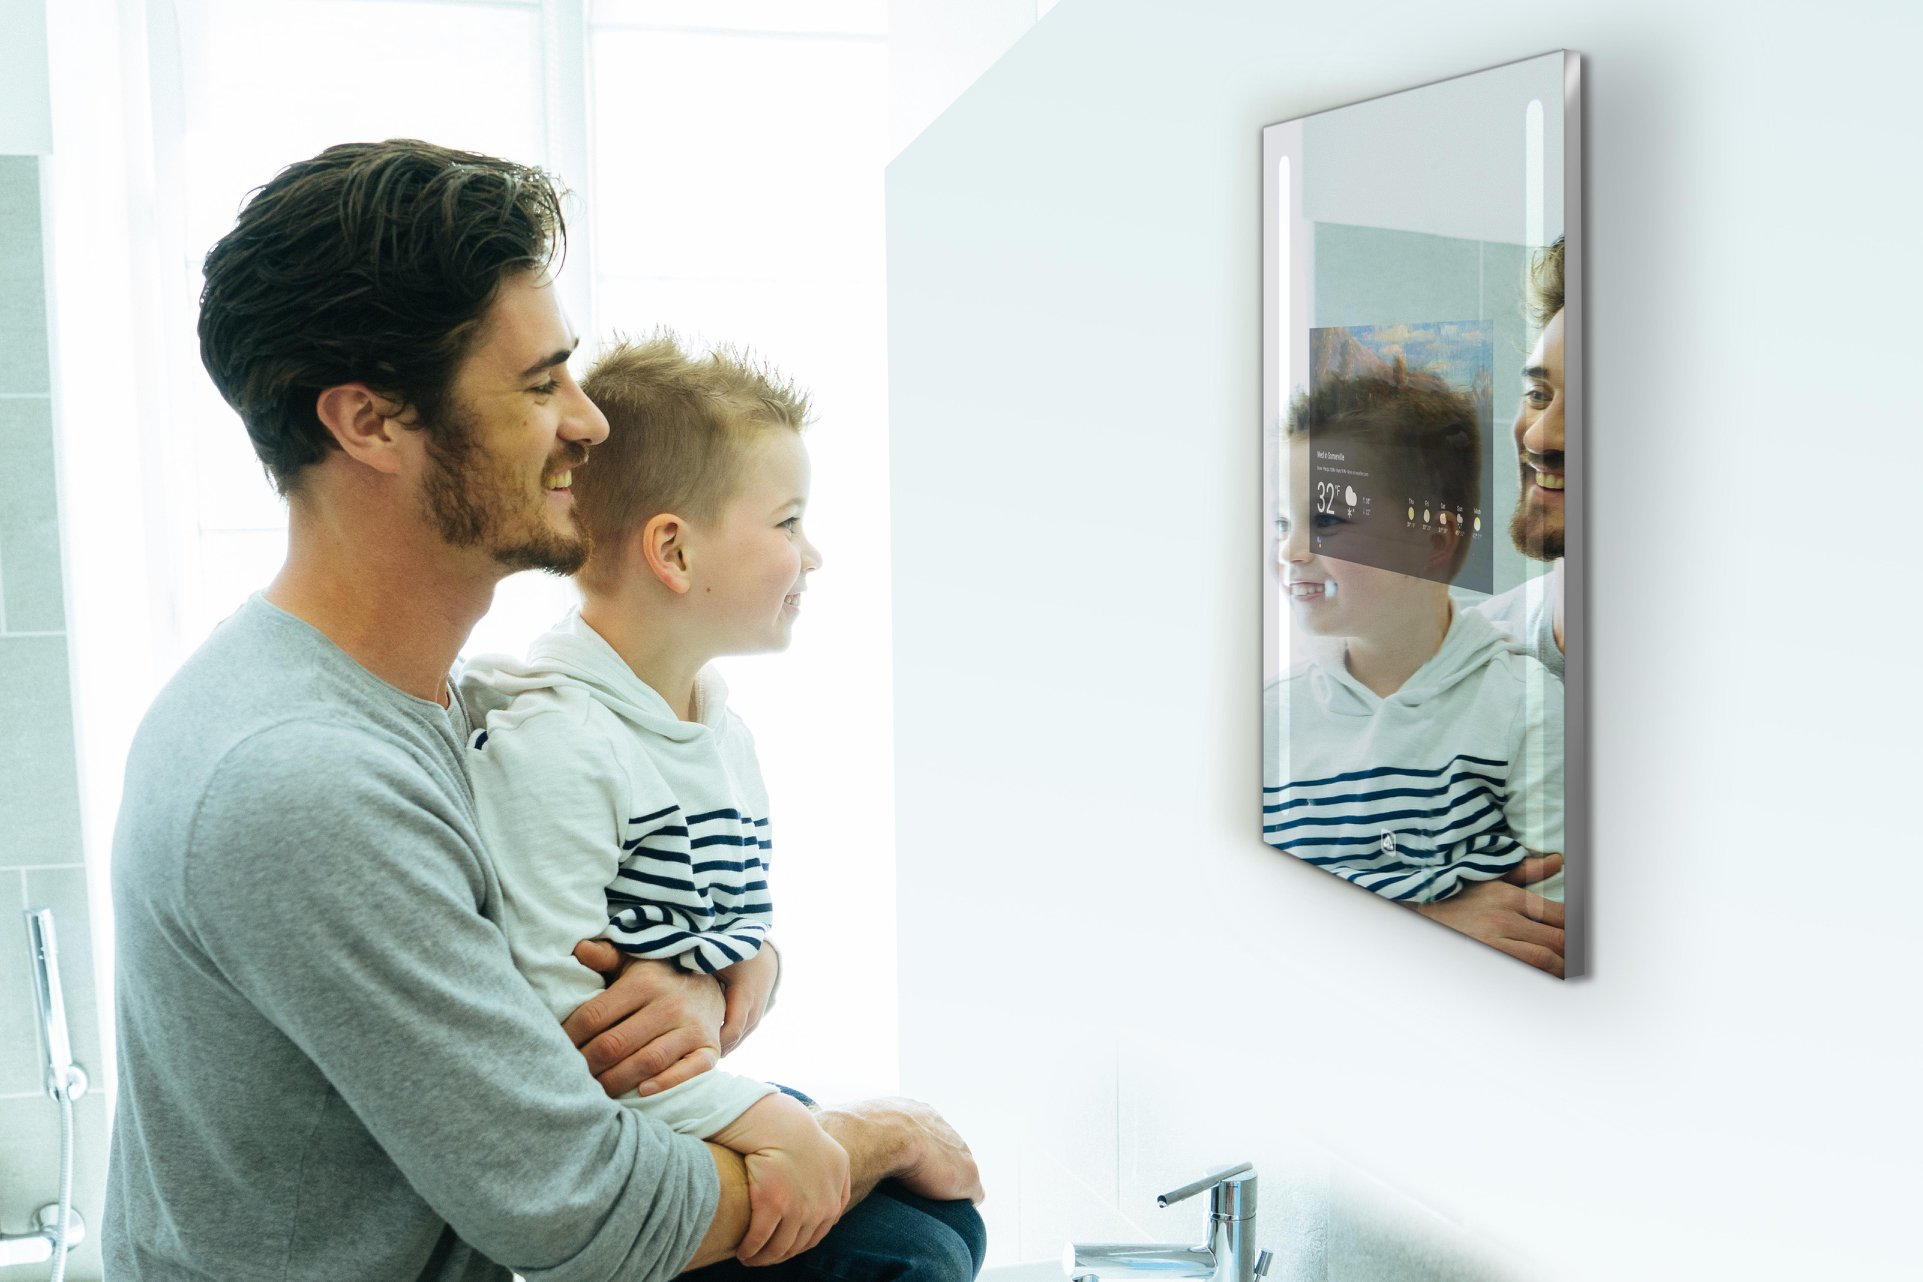 Get weather, news and more from the smart mirror on the wall